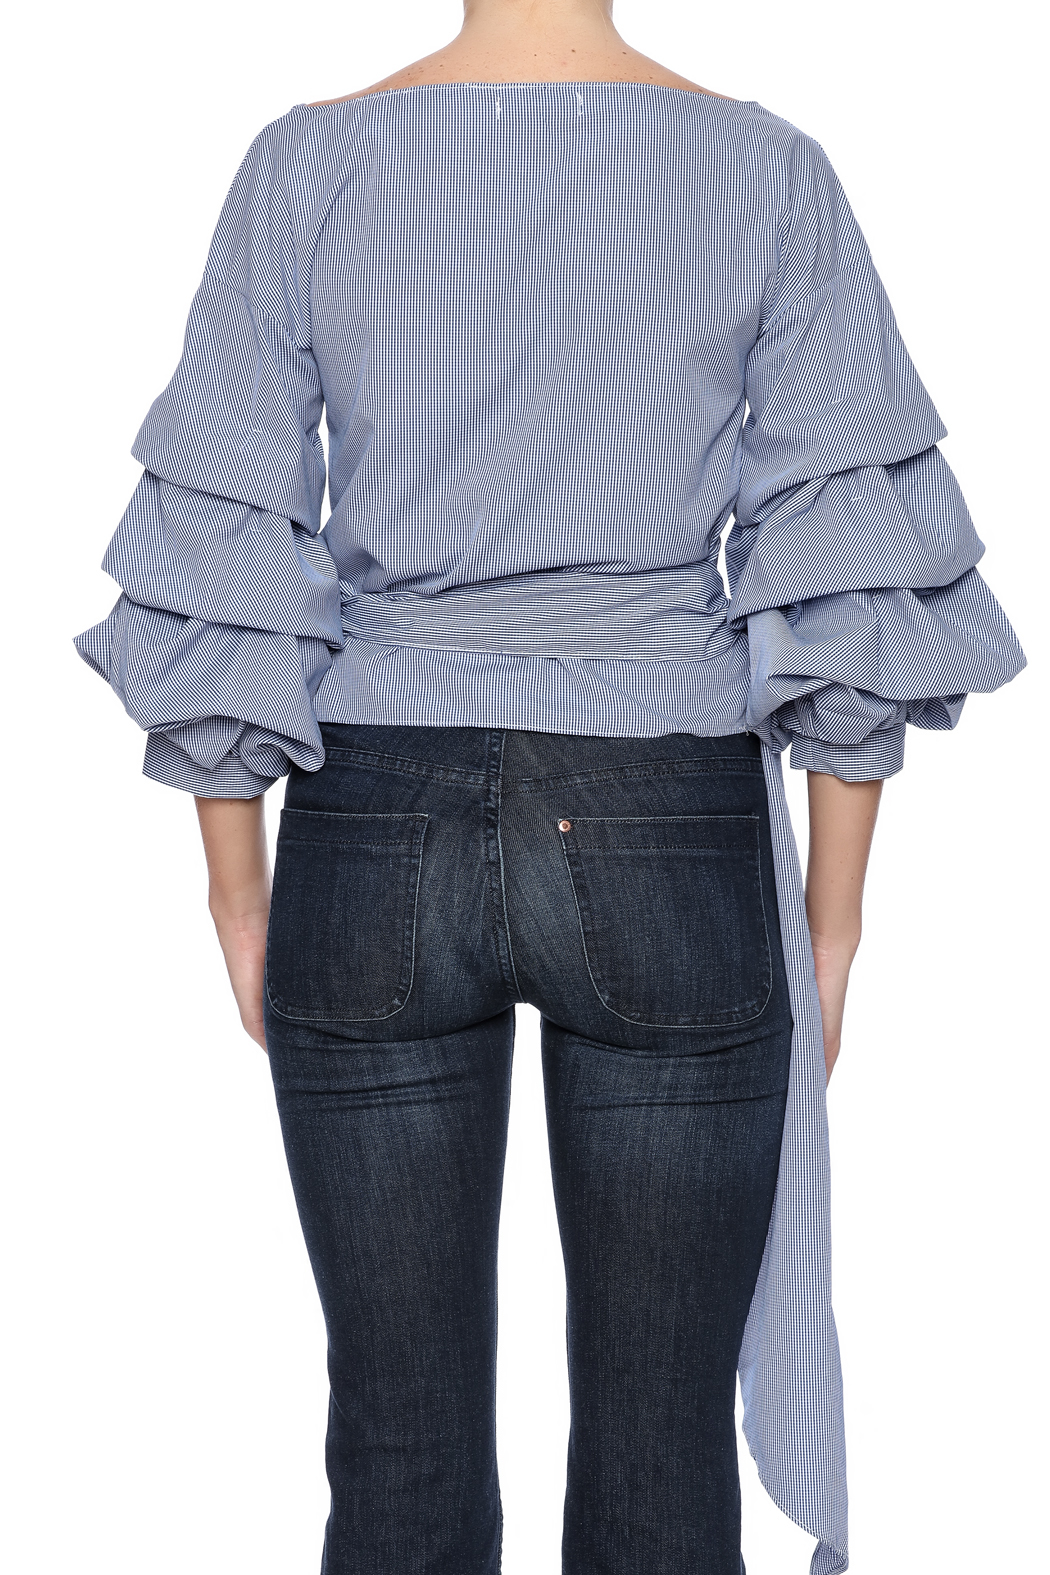 alpha & omega Ruffle Sleeve Top - Back Cropped Image